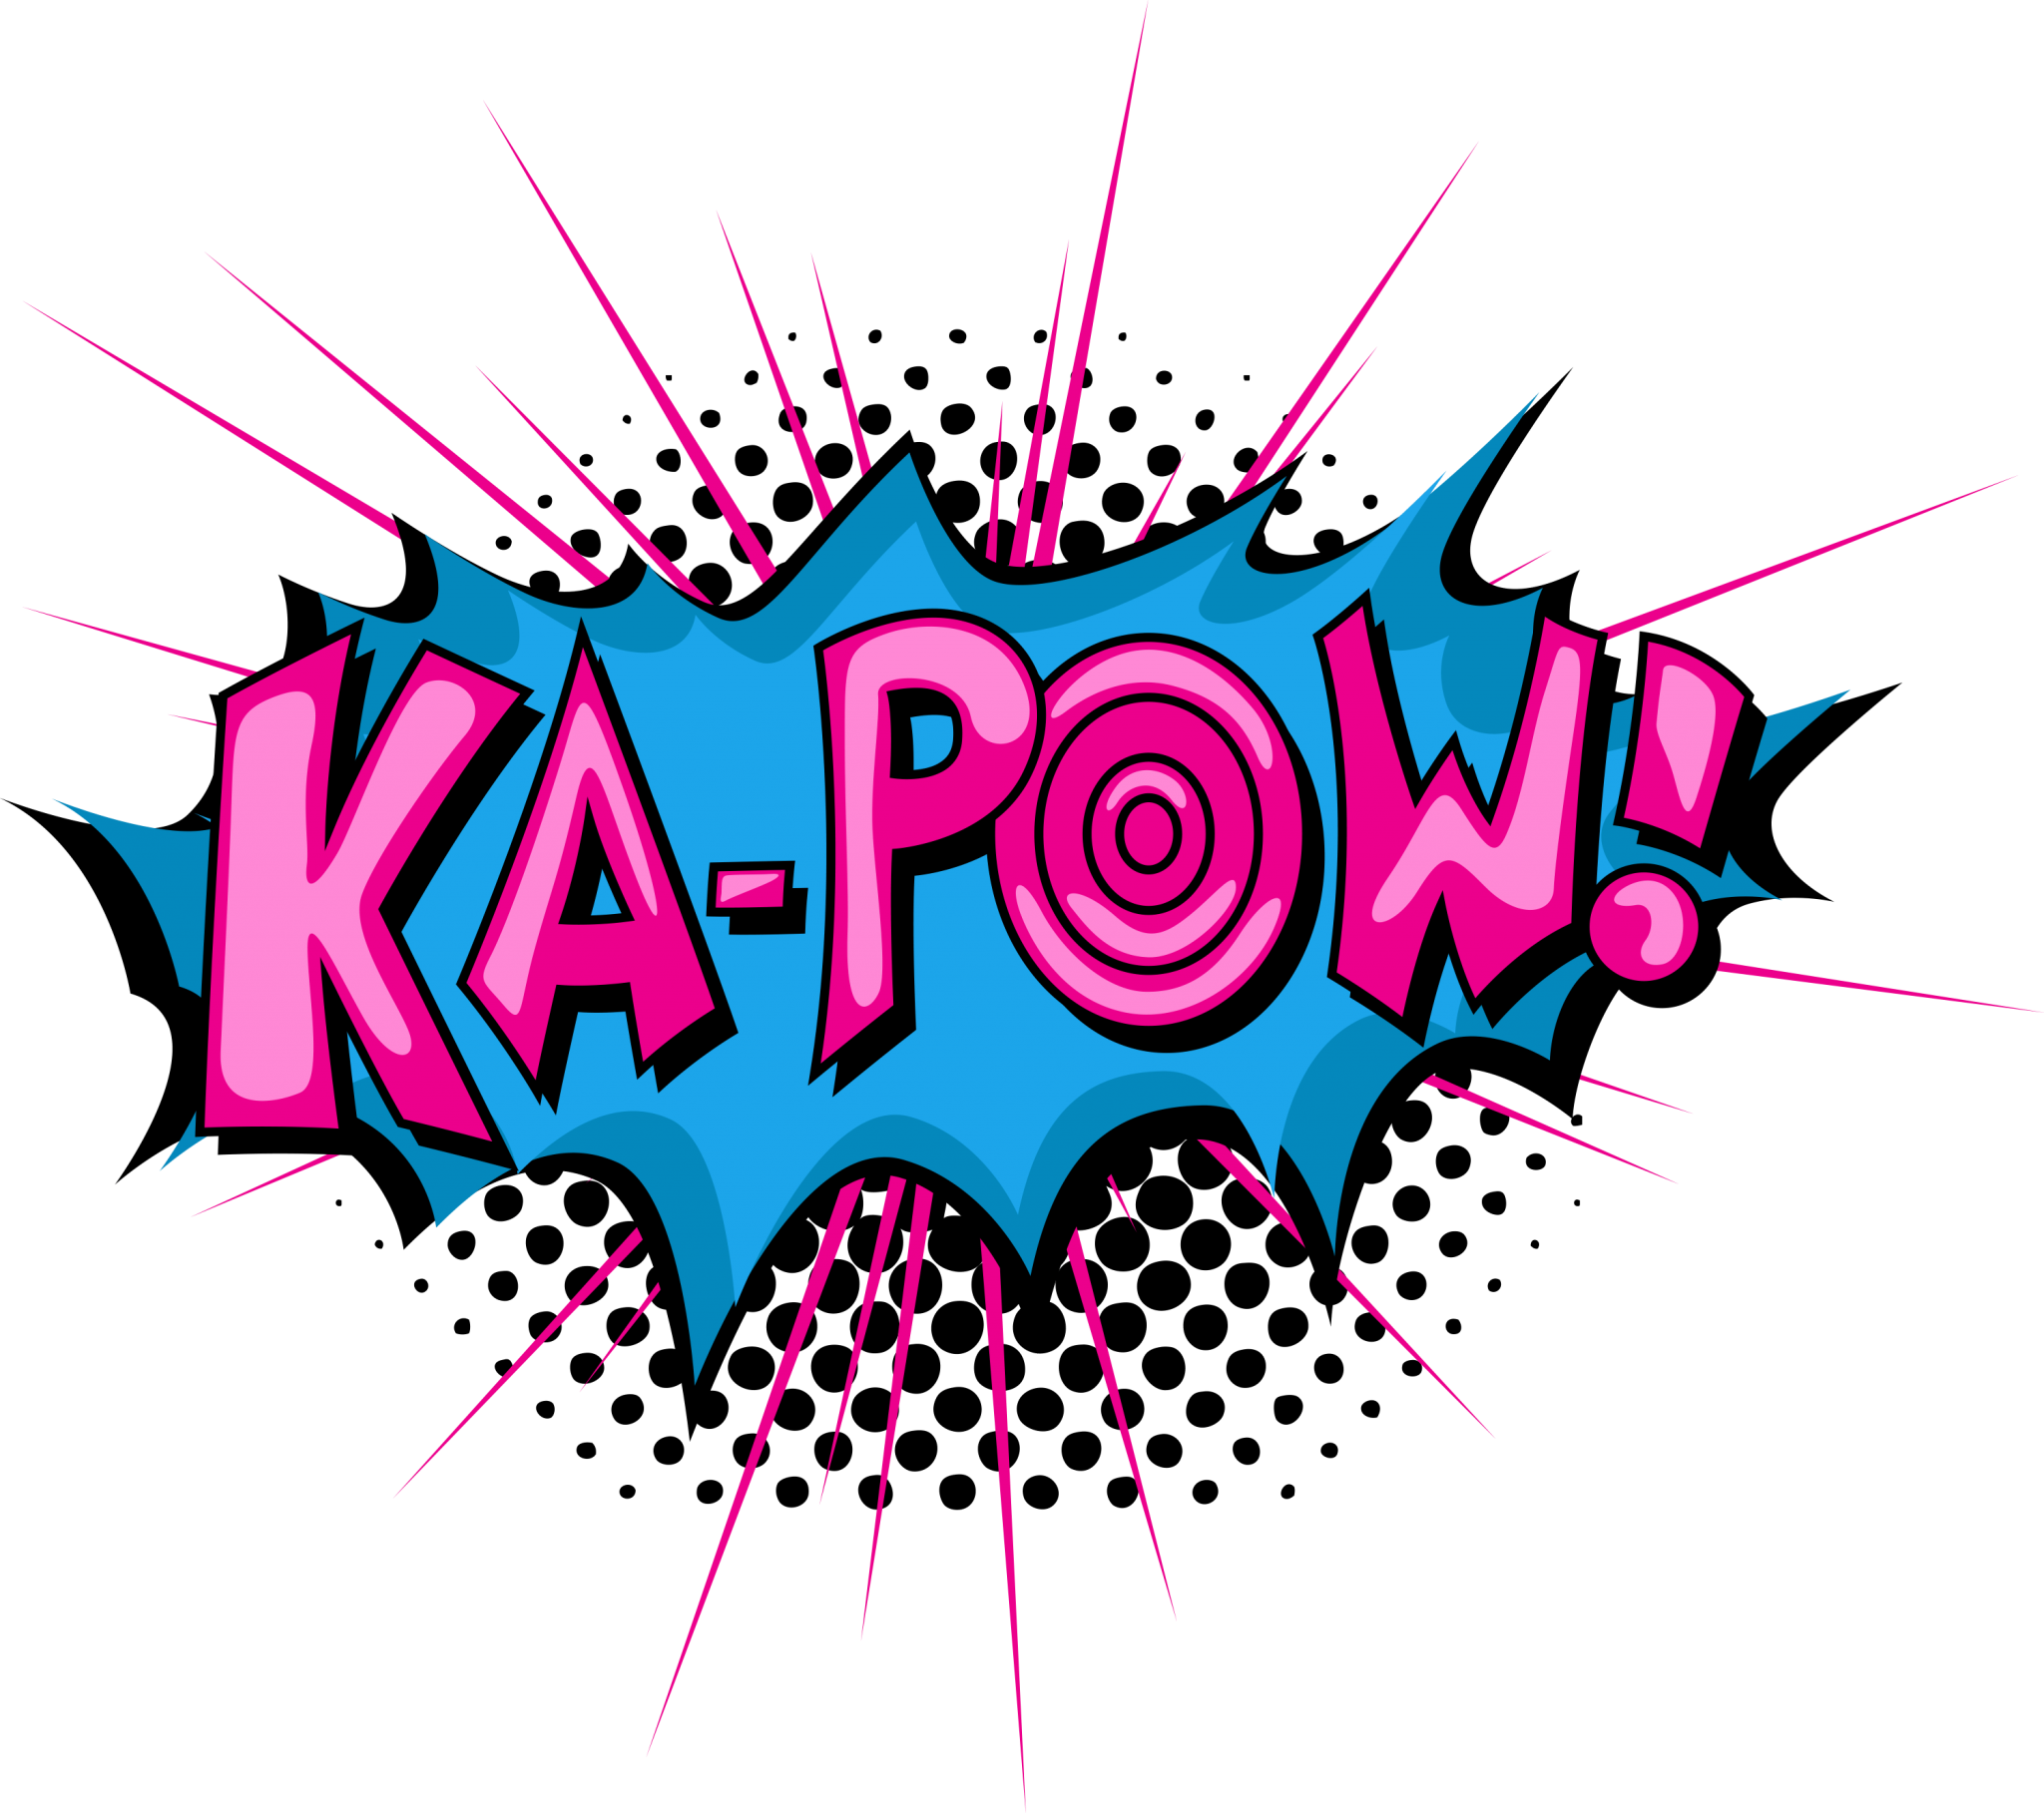 Comic book comics royalty. Pow! png pink picture black and white download